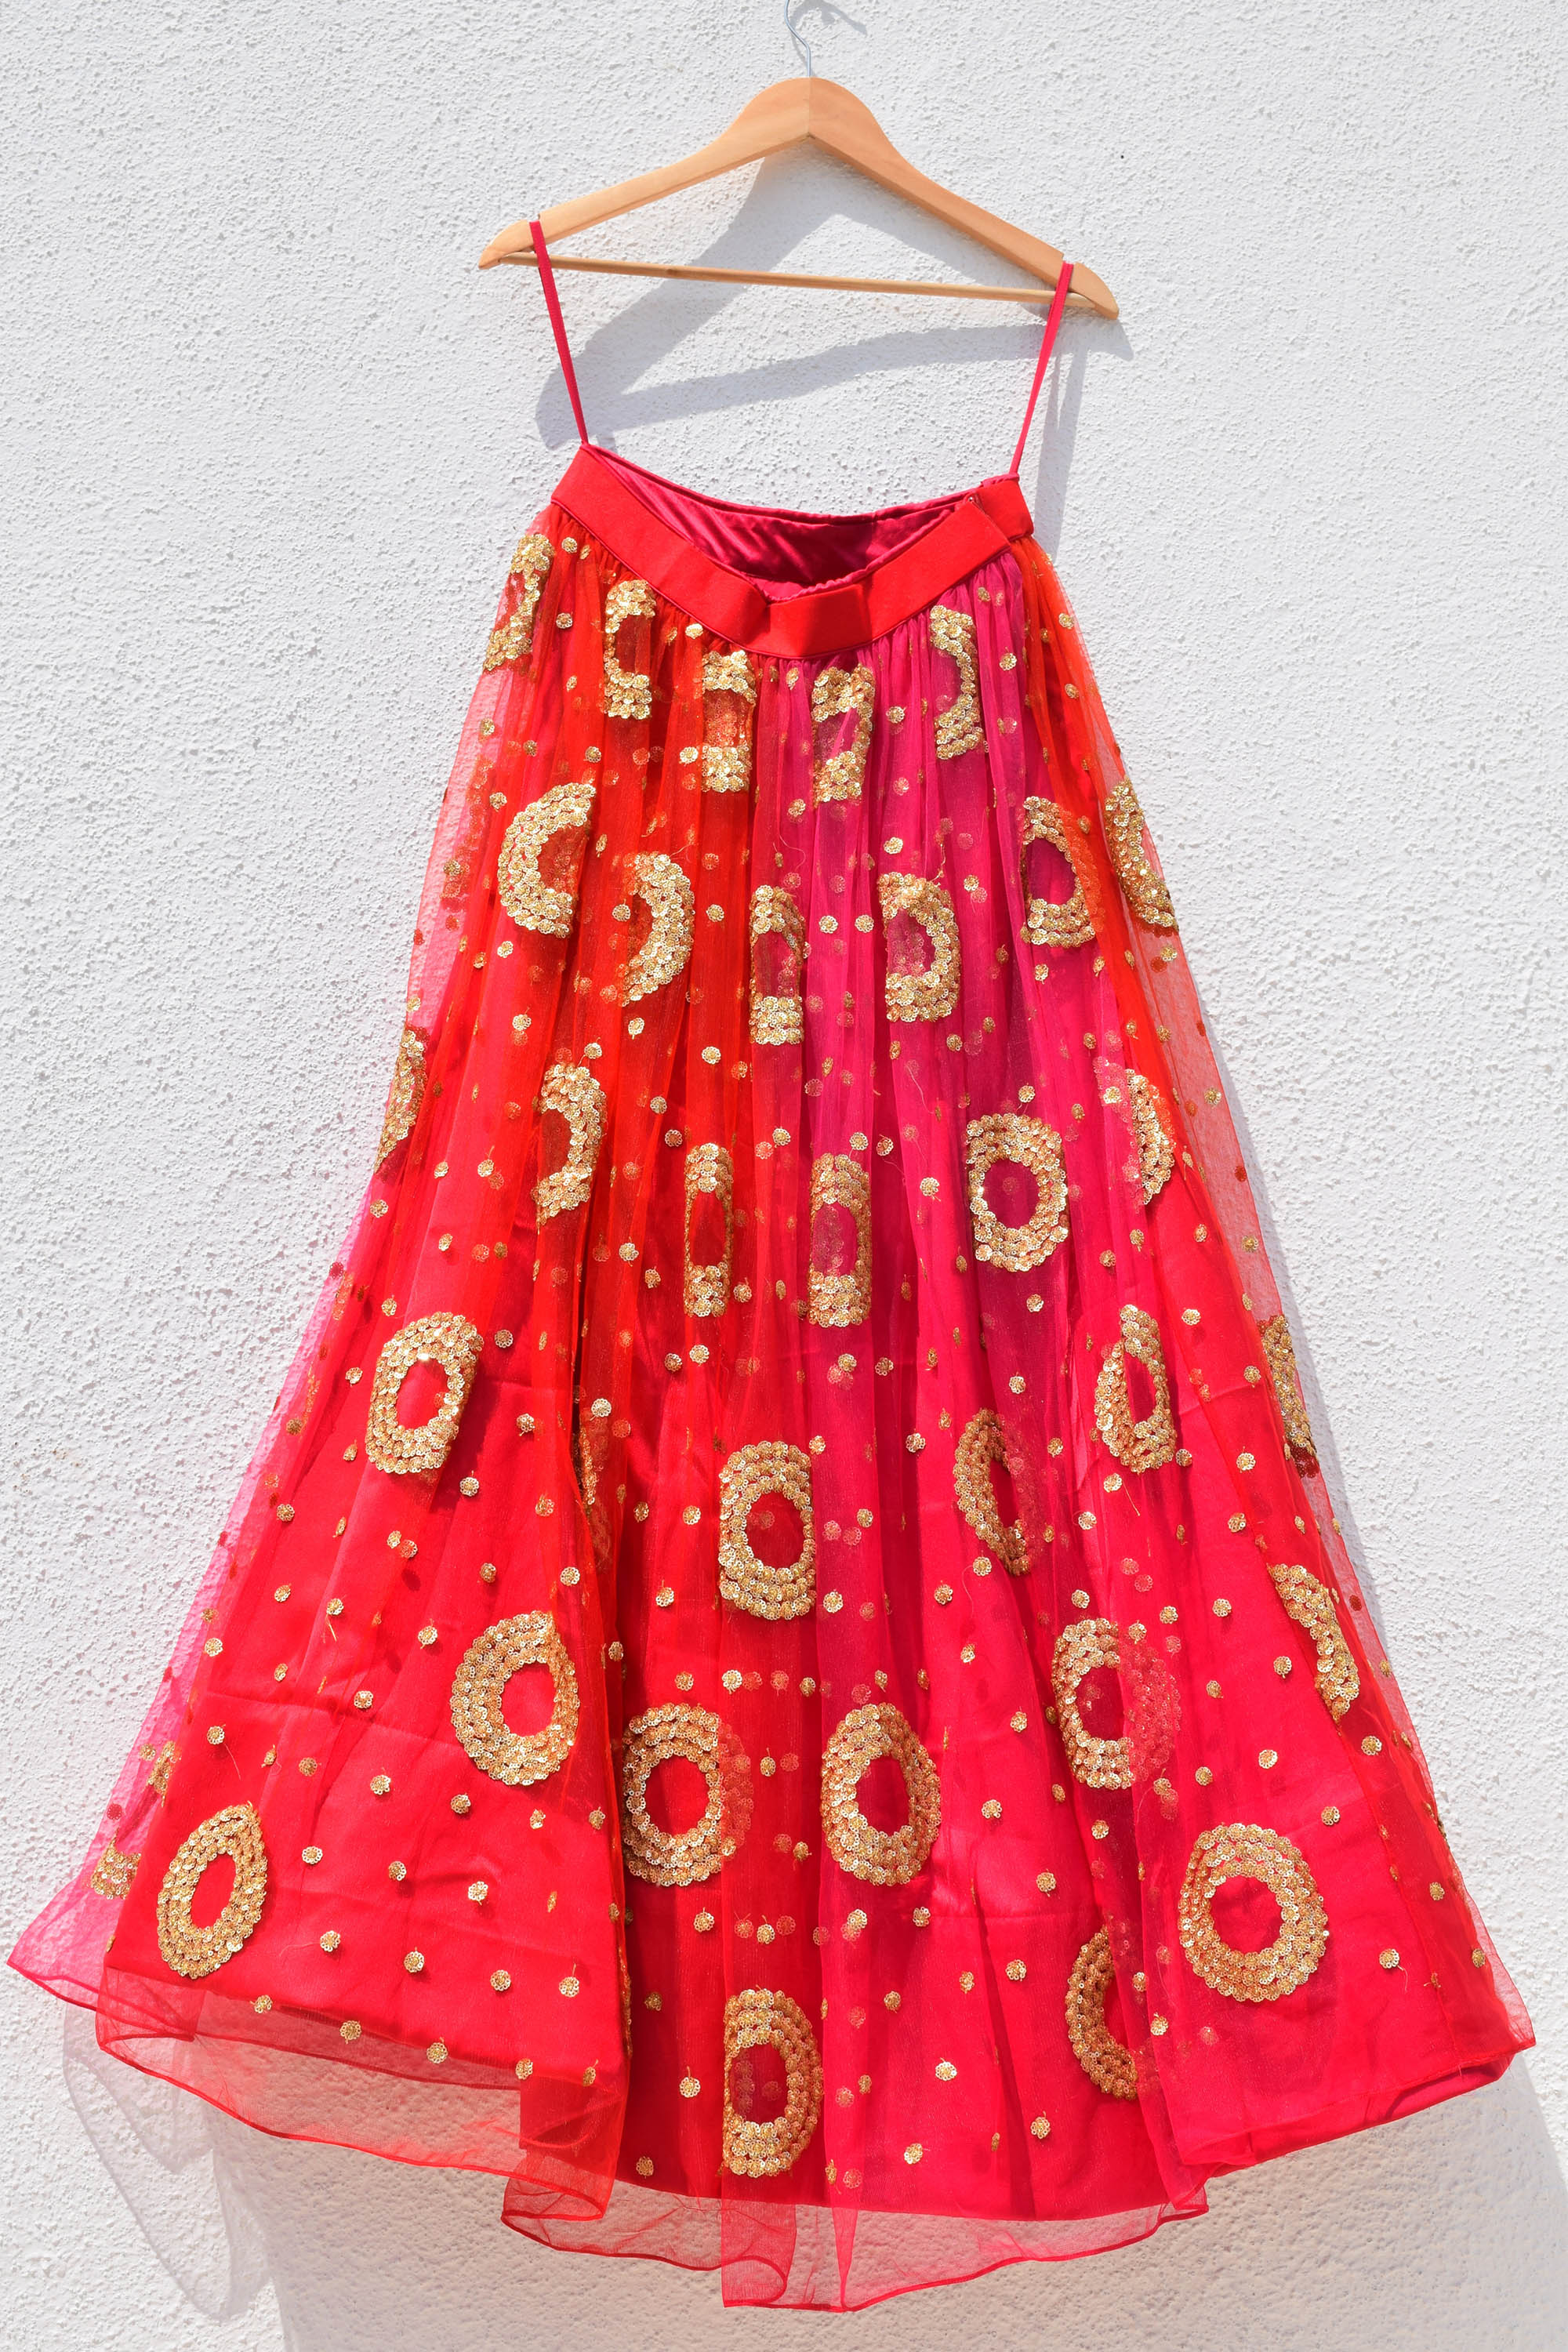 Red Ombre Lehenga  With Cutout Sleeve Croptop CLOSE